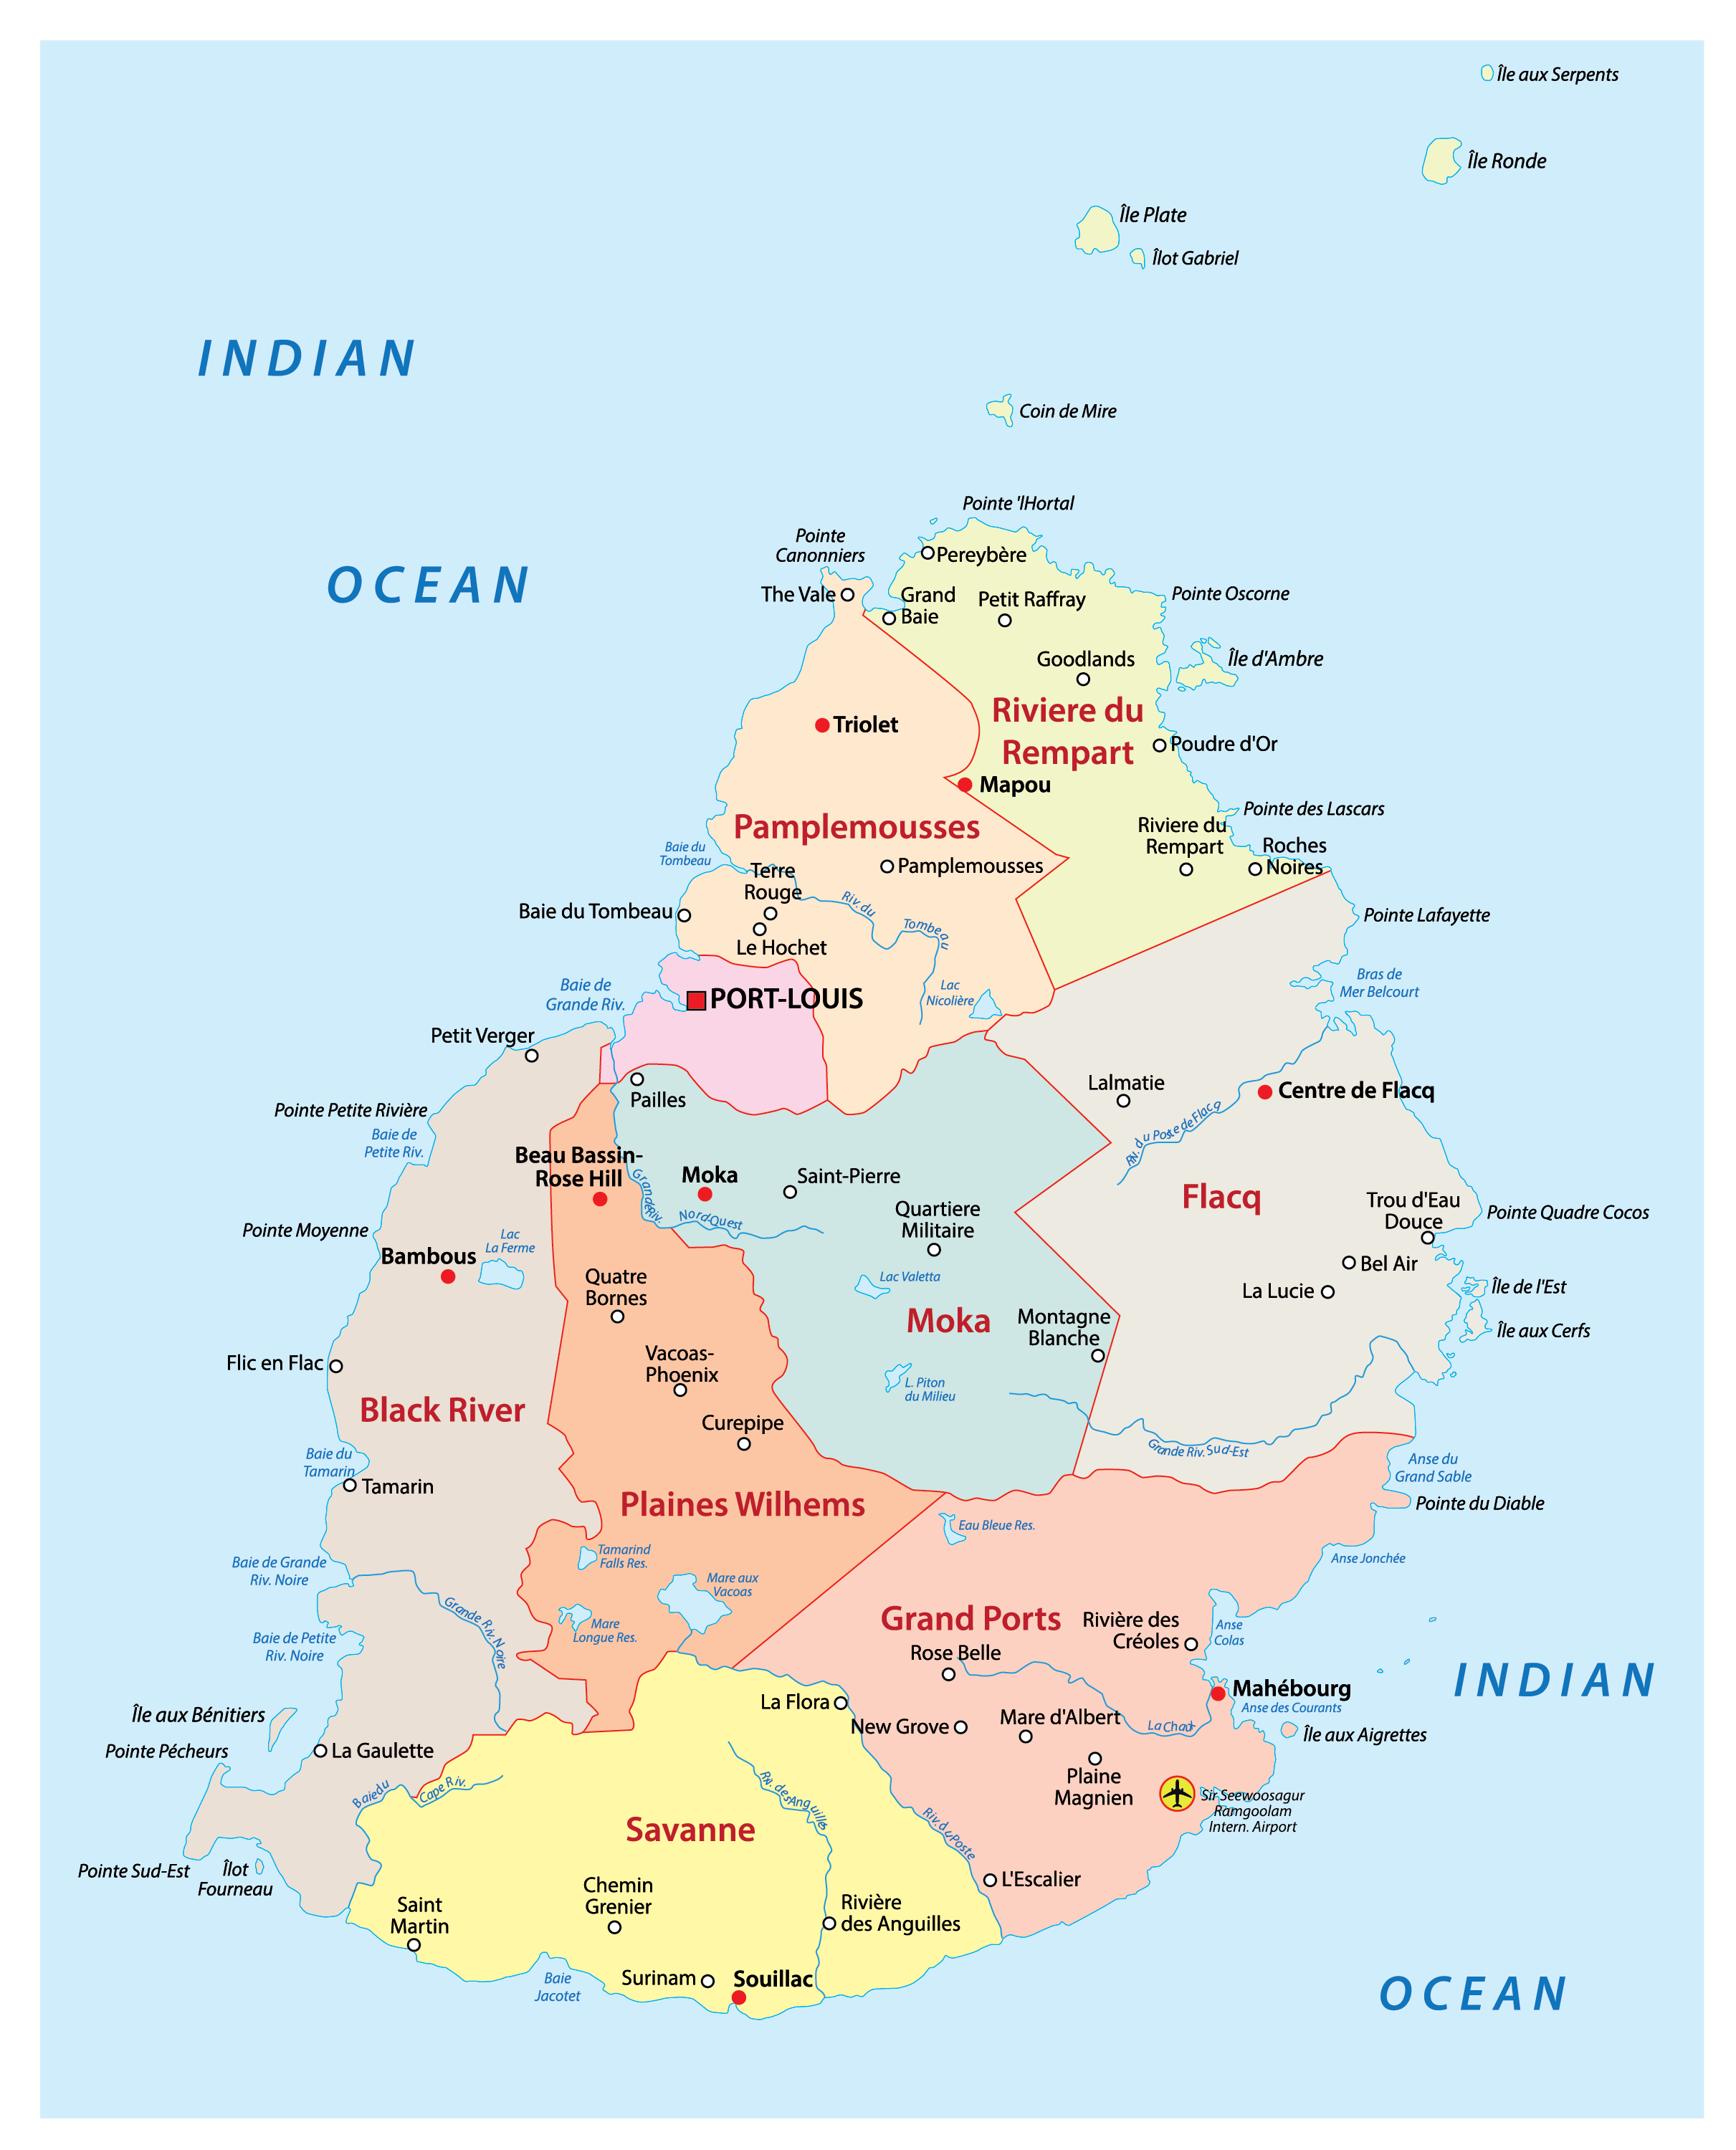 The Political Map of Mauritius showing the nine districts of the country, their capitals, and the national capital of Port Louis.